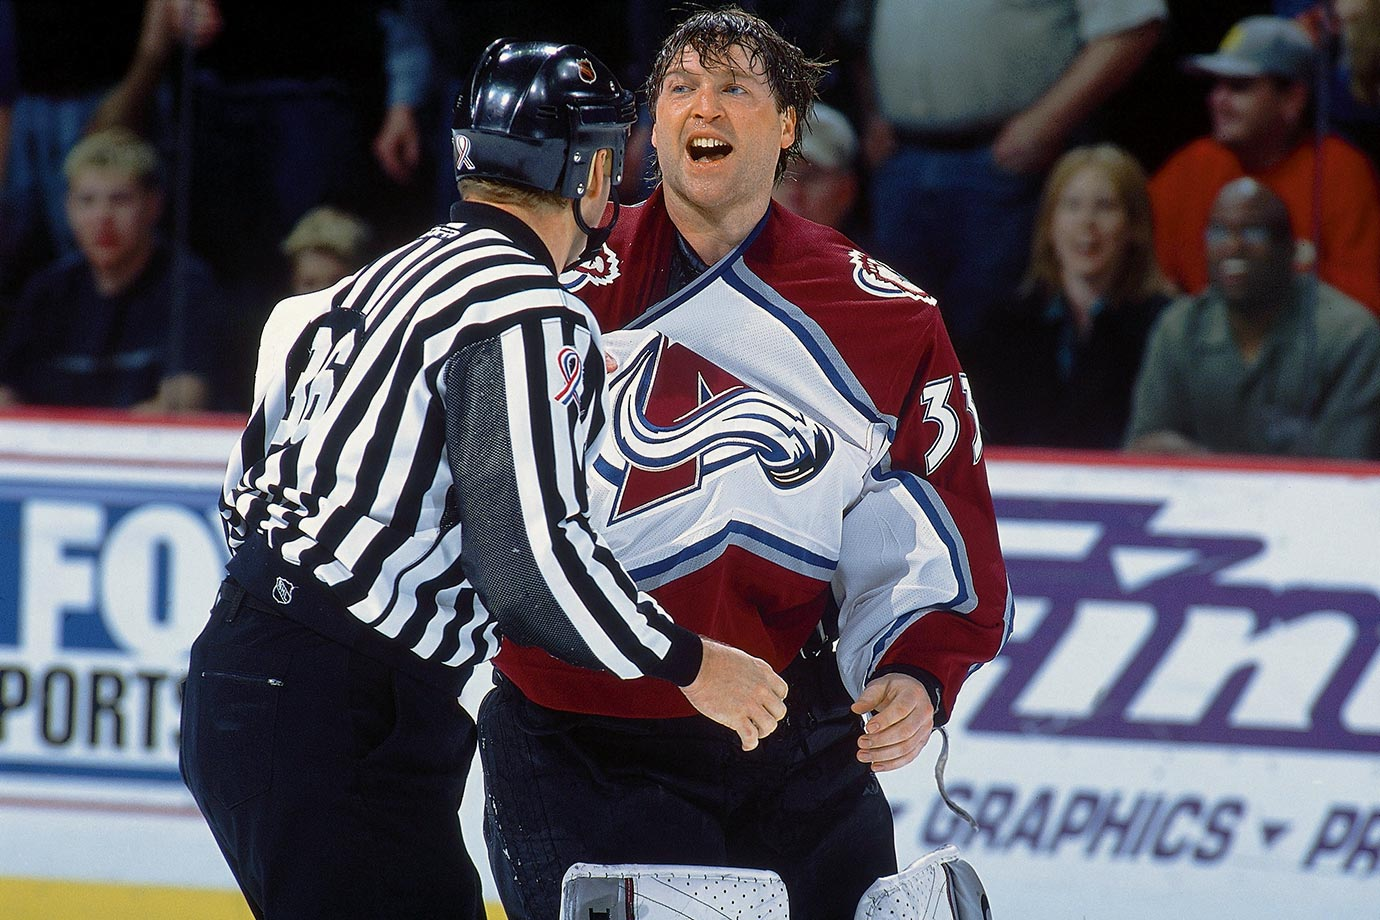 March 12, 2002 —Avalanche vs. Red Wings